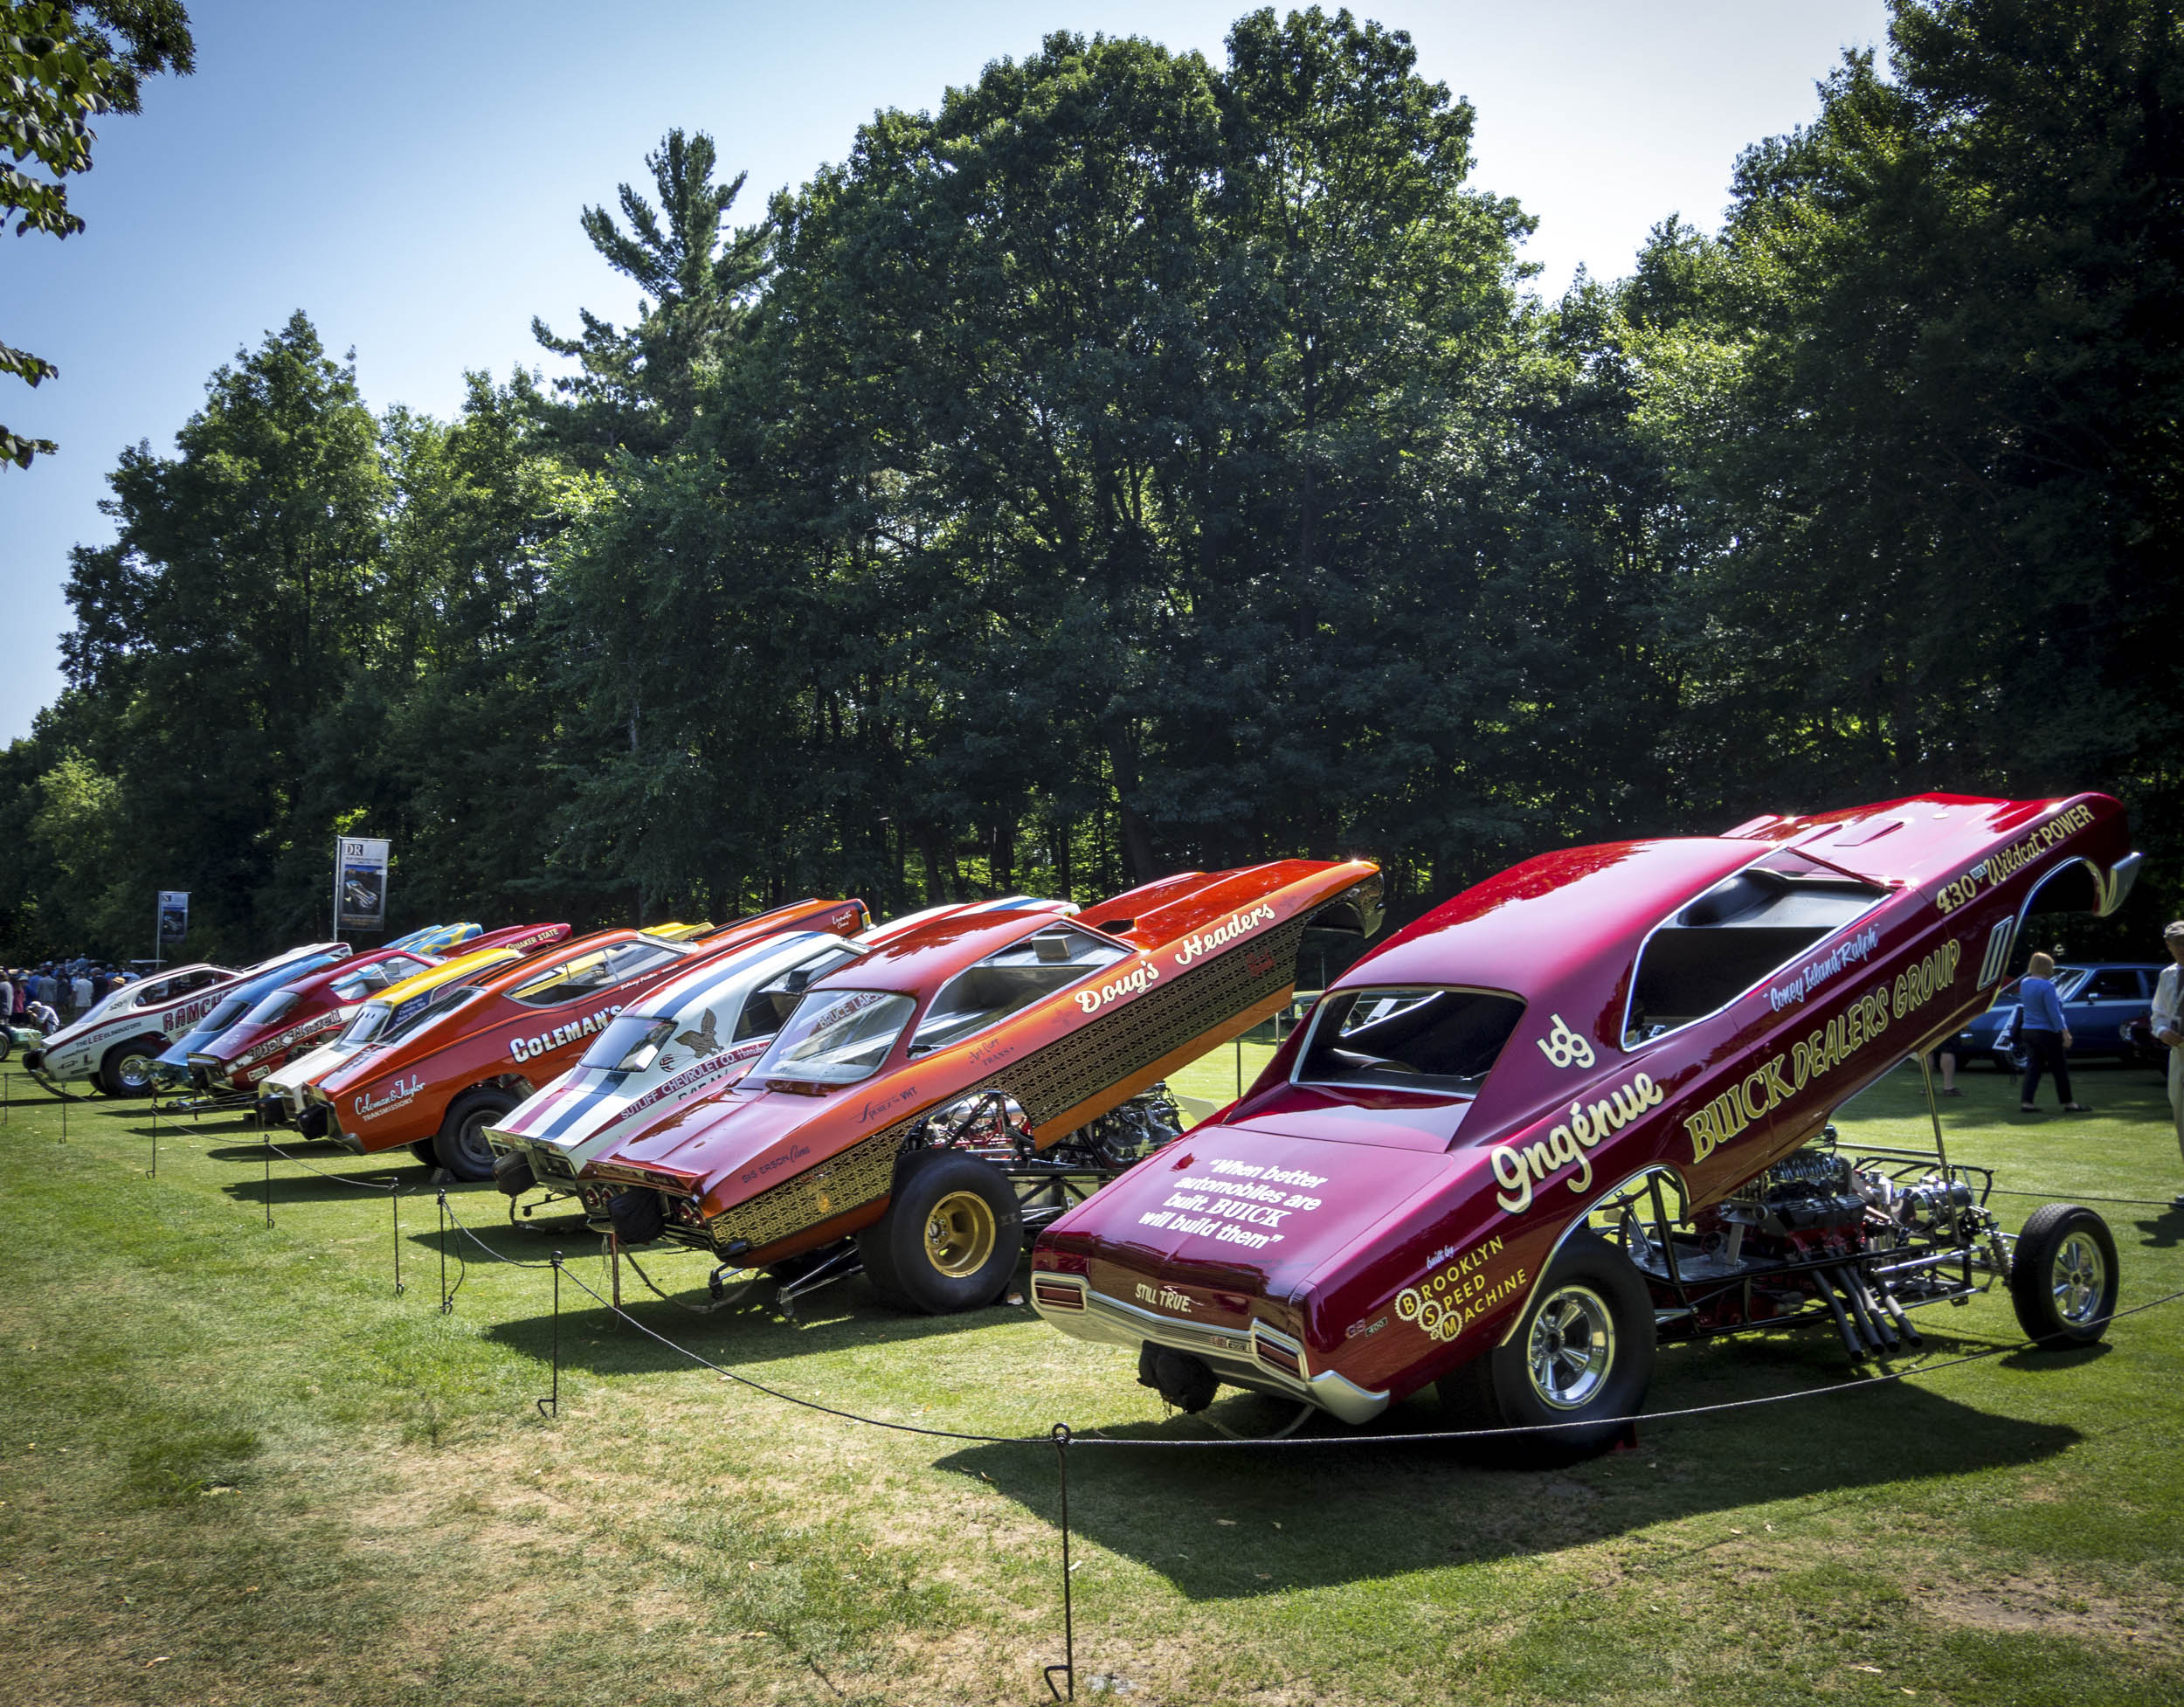 Drag Racing cars on display